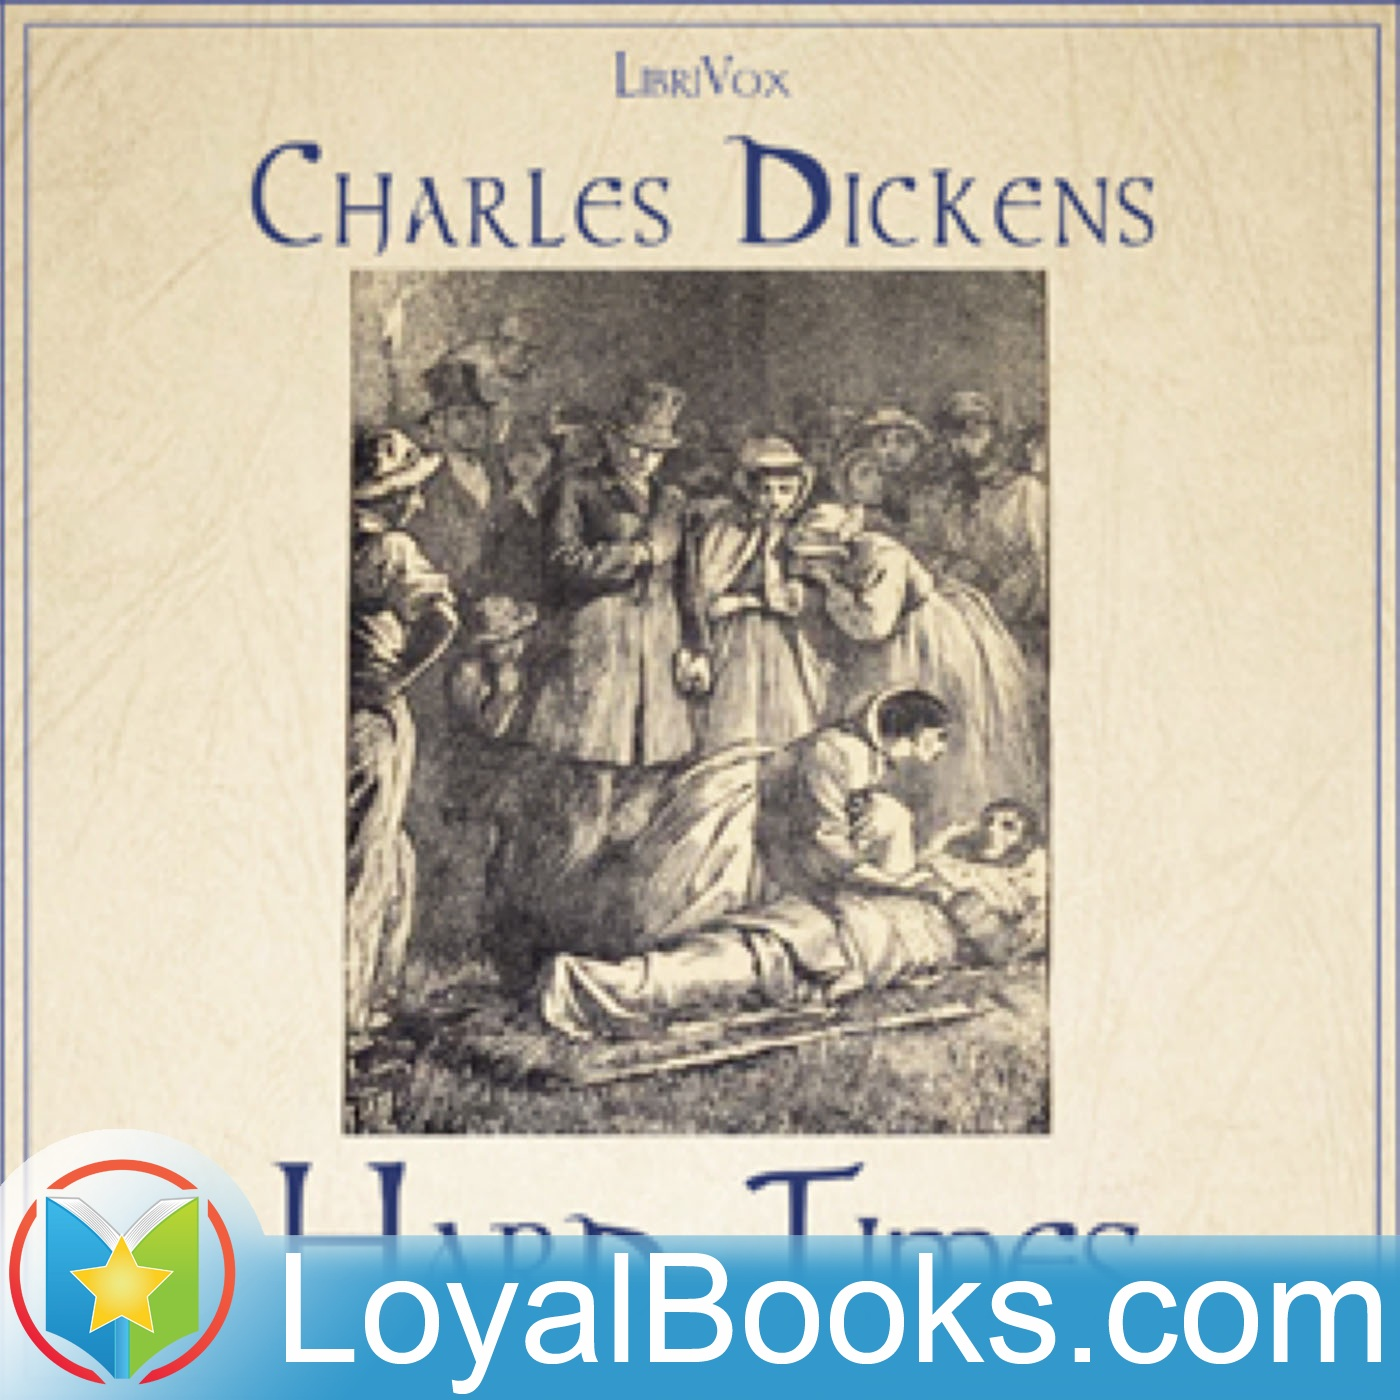 <![CDATA[Hard Times by Charles Dickens]]>